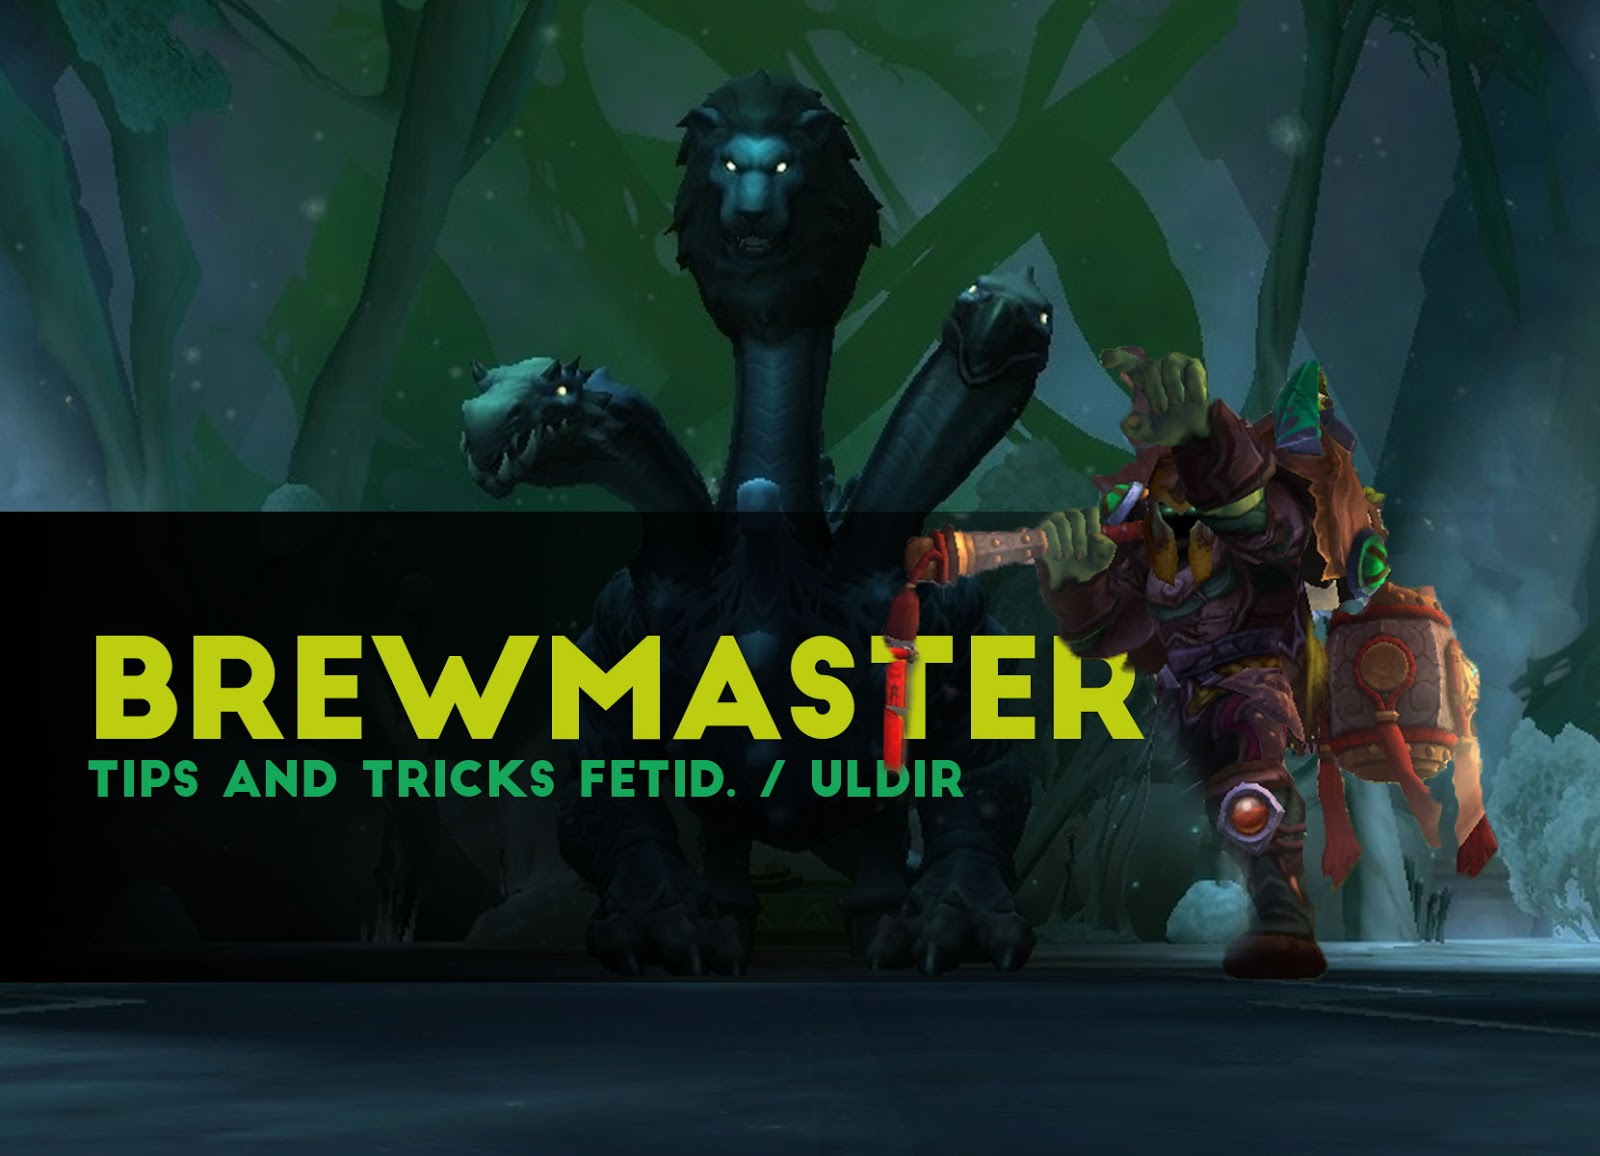 Brewmaster Tips and Tricks Fetid Devourer / ULDIR - Patch 8.0